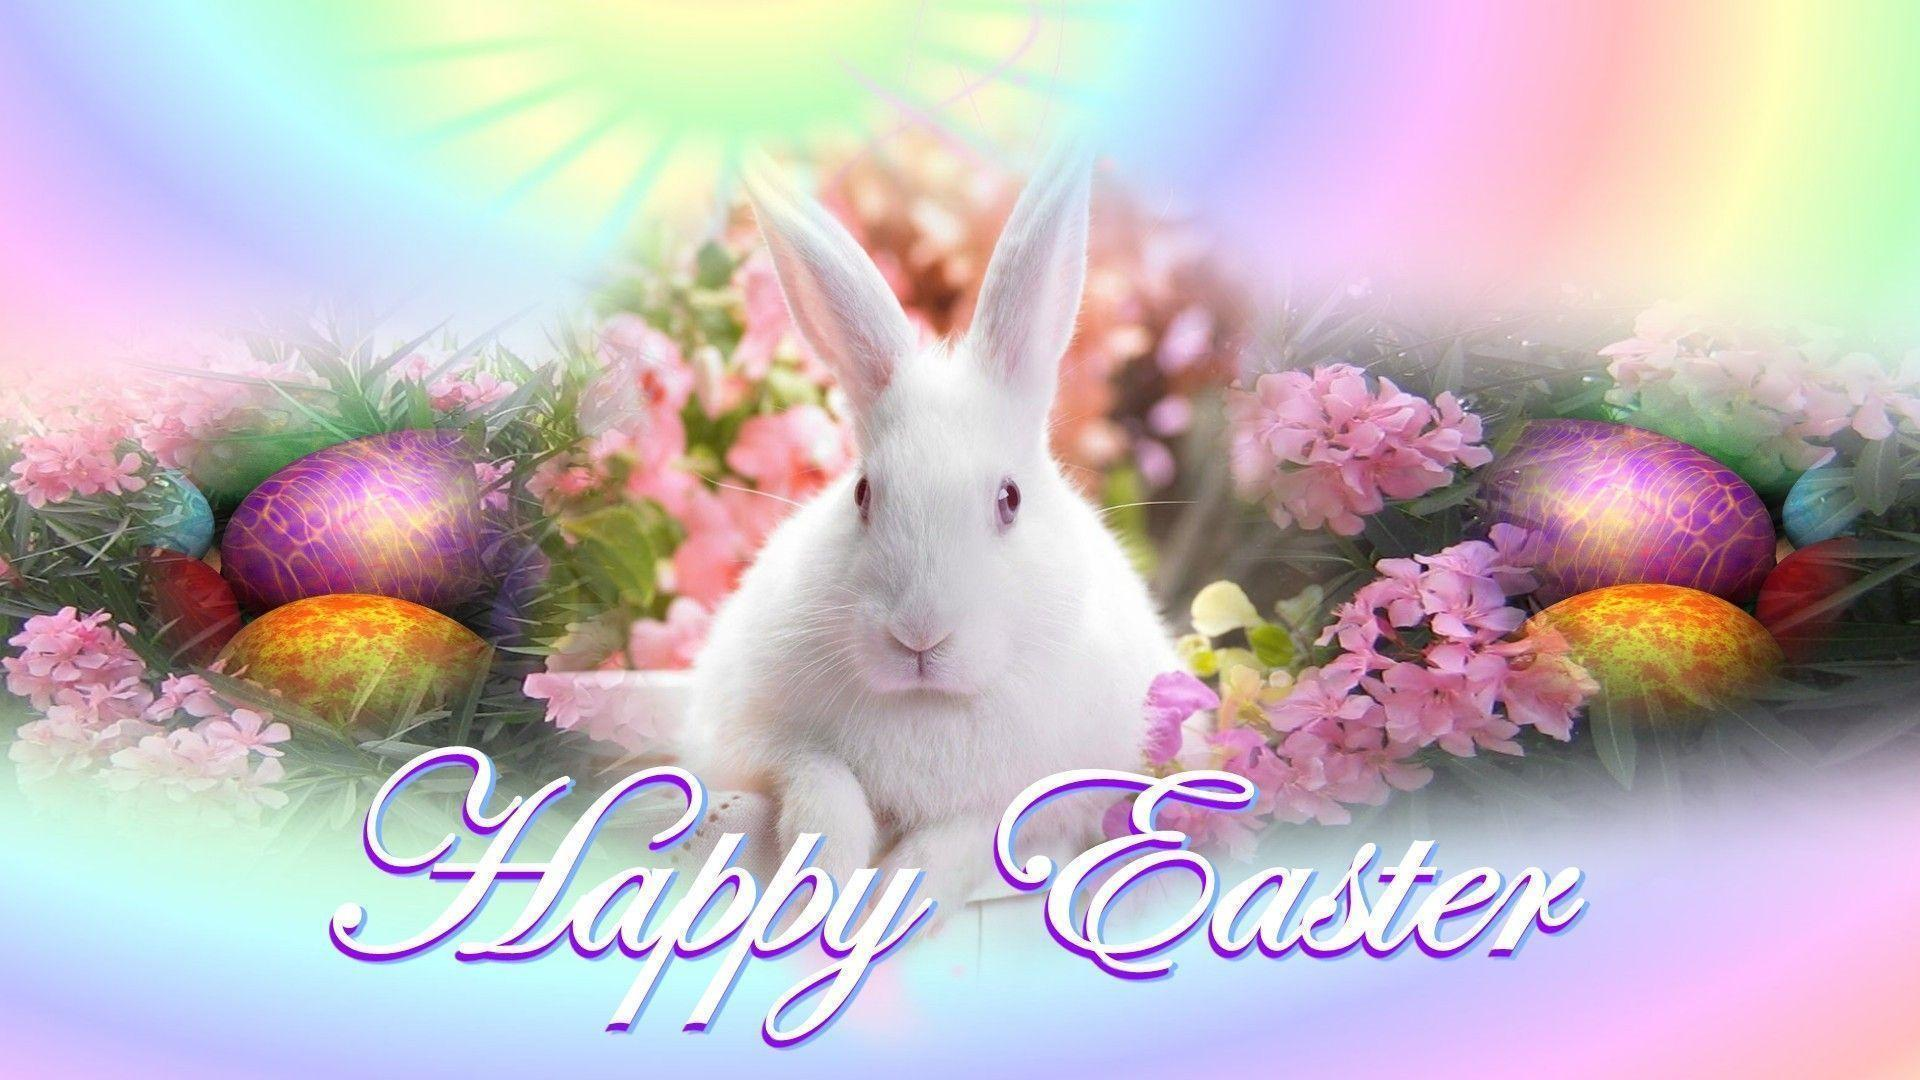 15 Happy Easter 2014 Wallpapers For Desktop